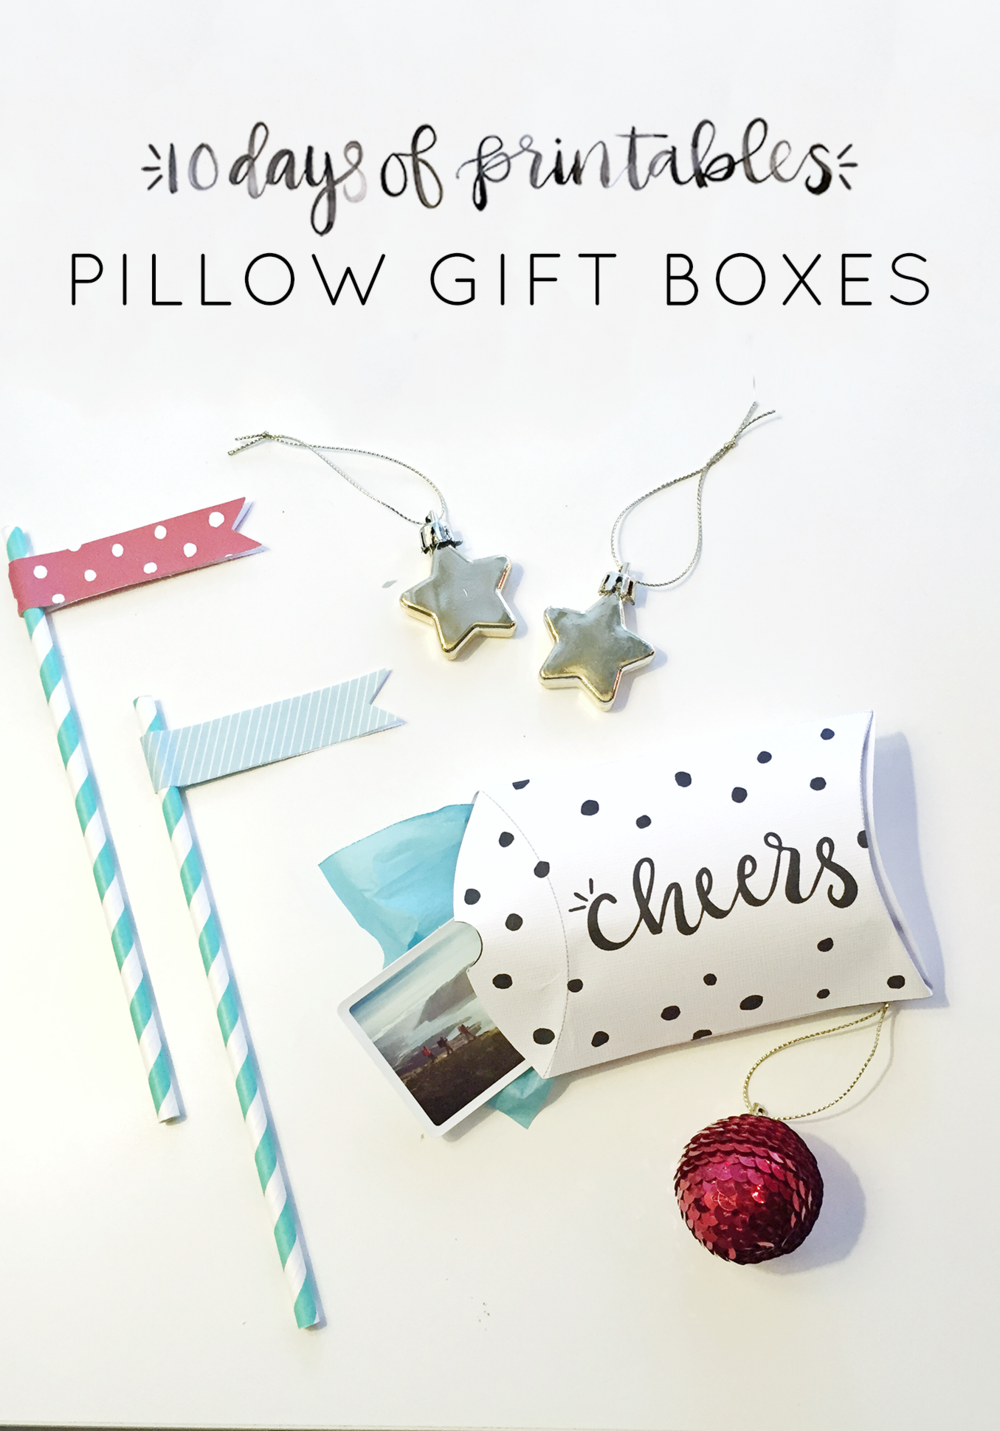 10 days of printables: pillow gift boxes — hey love designs